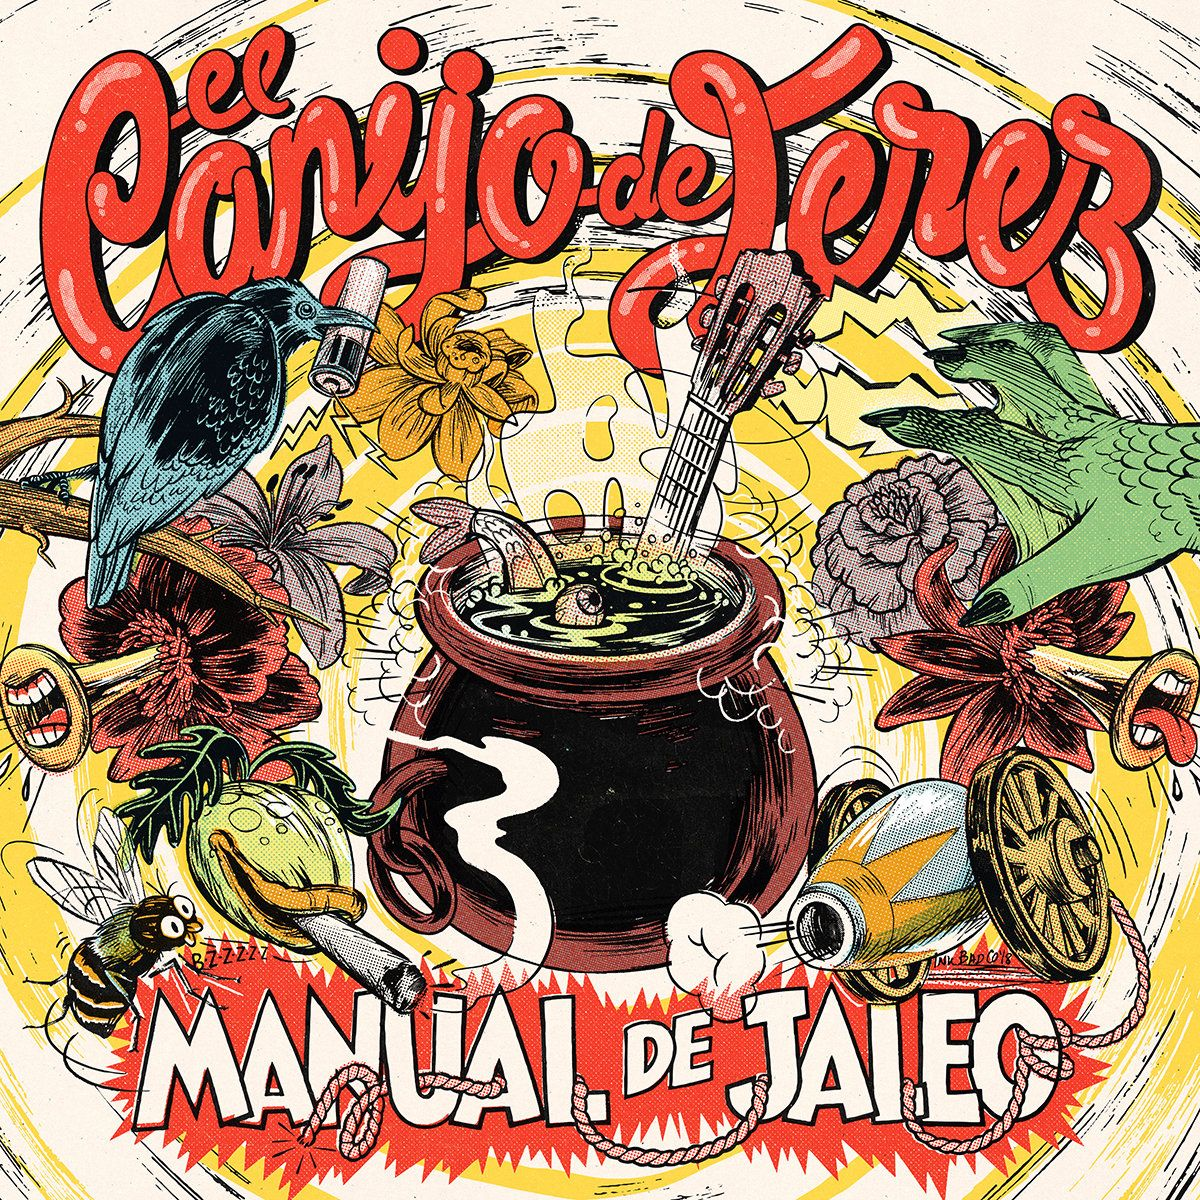 Manual de jaleo